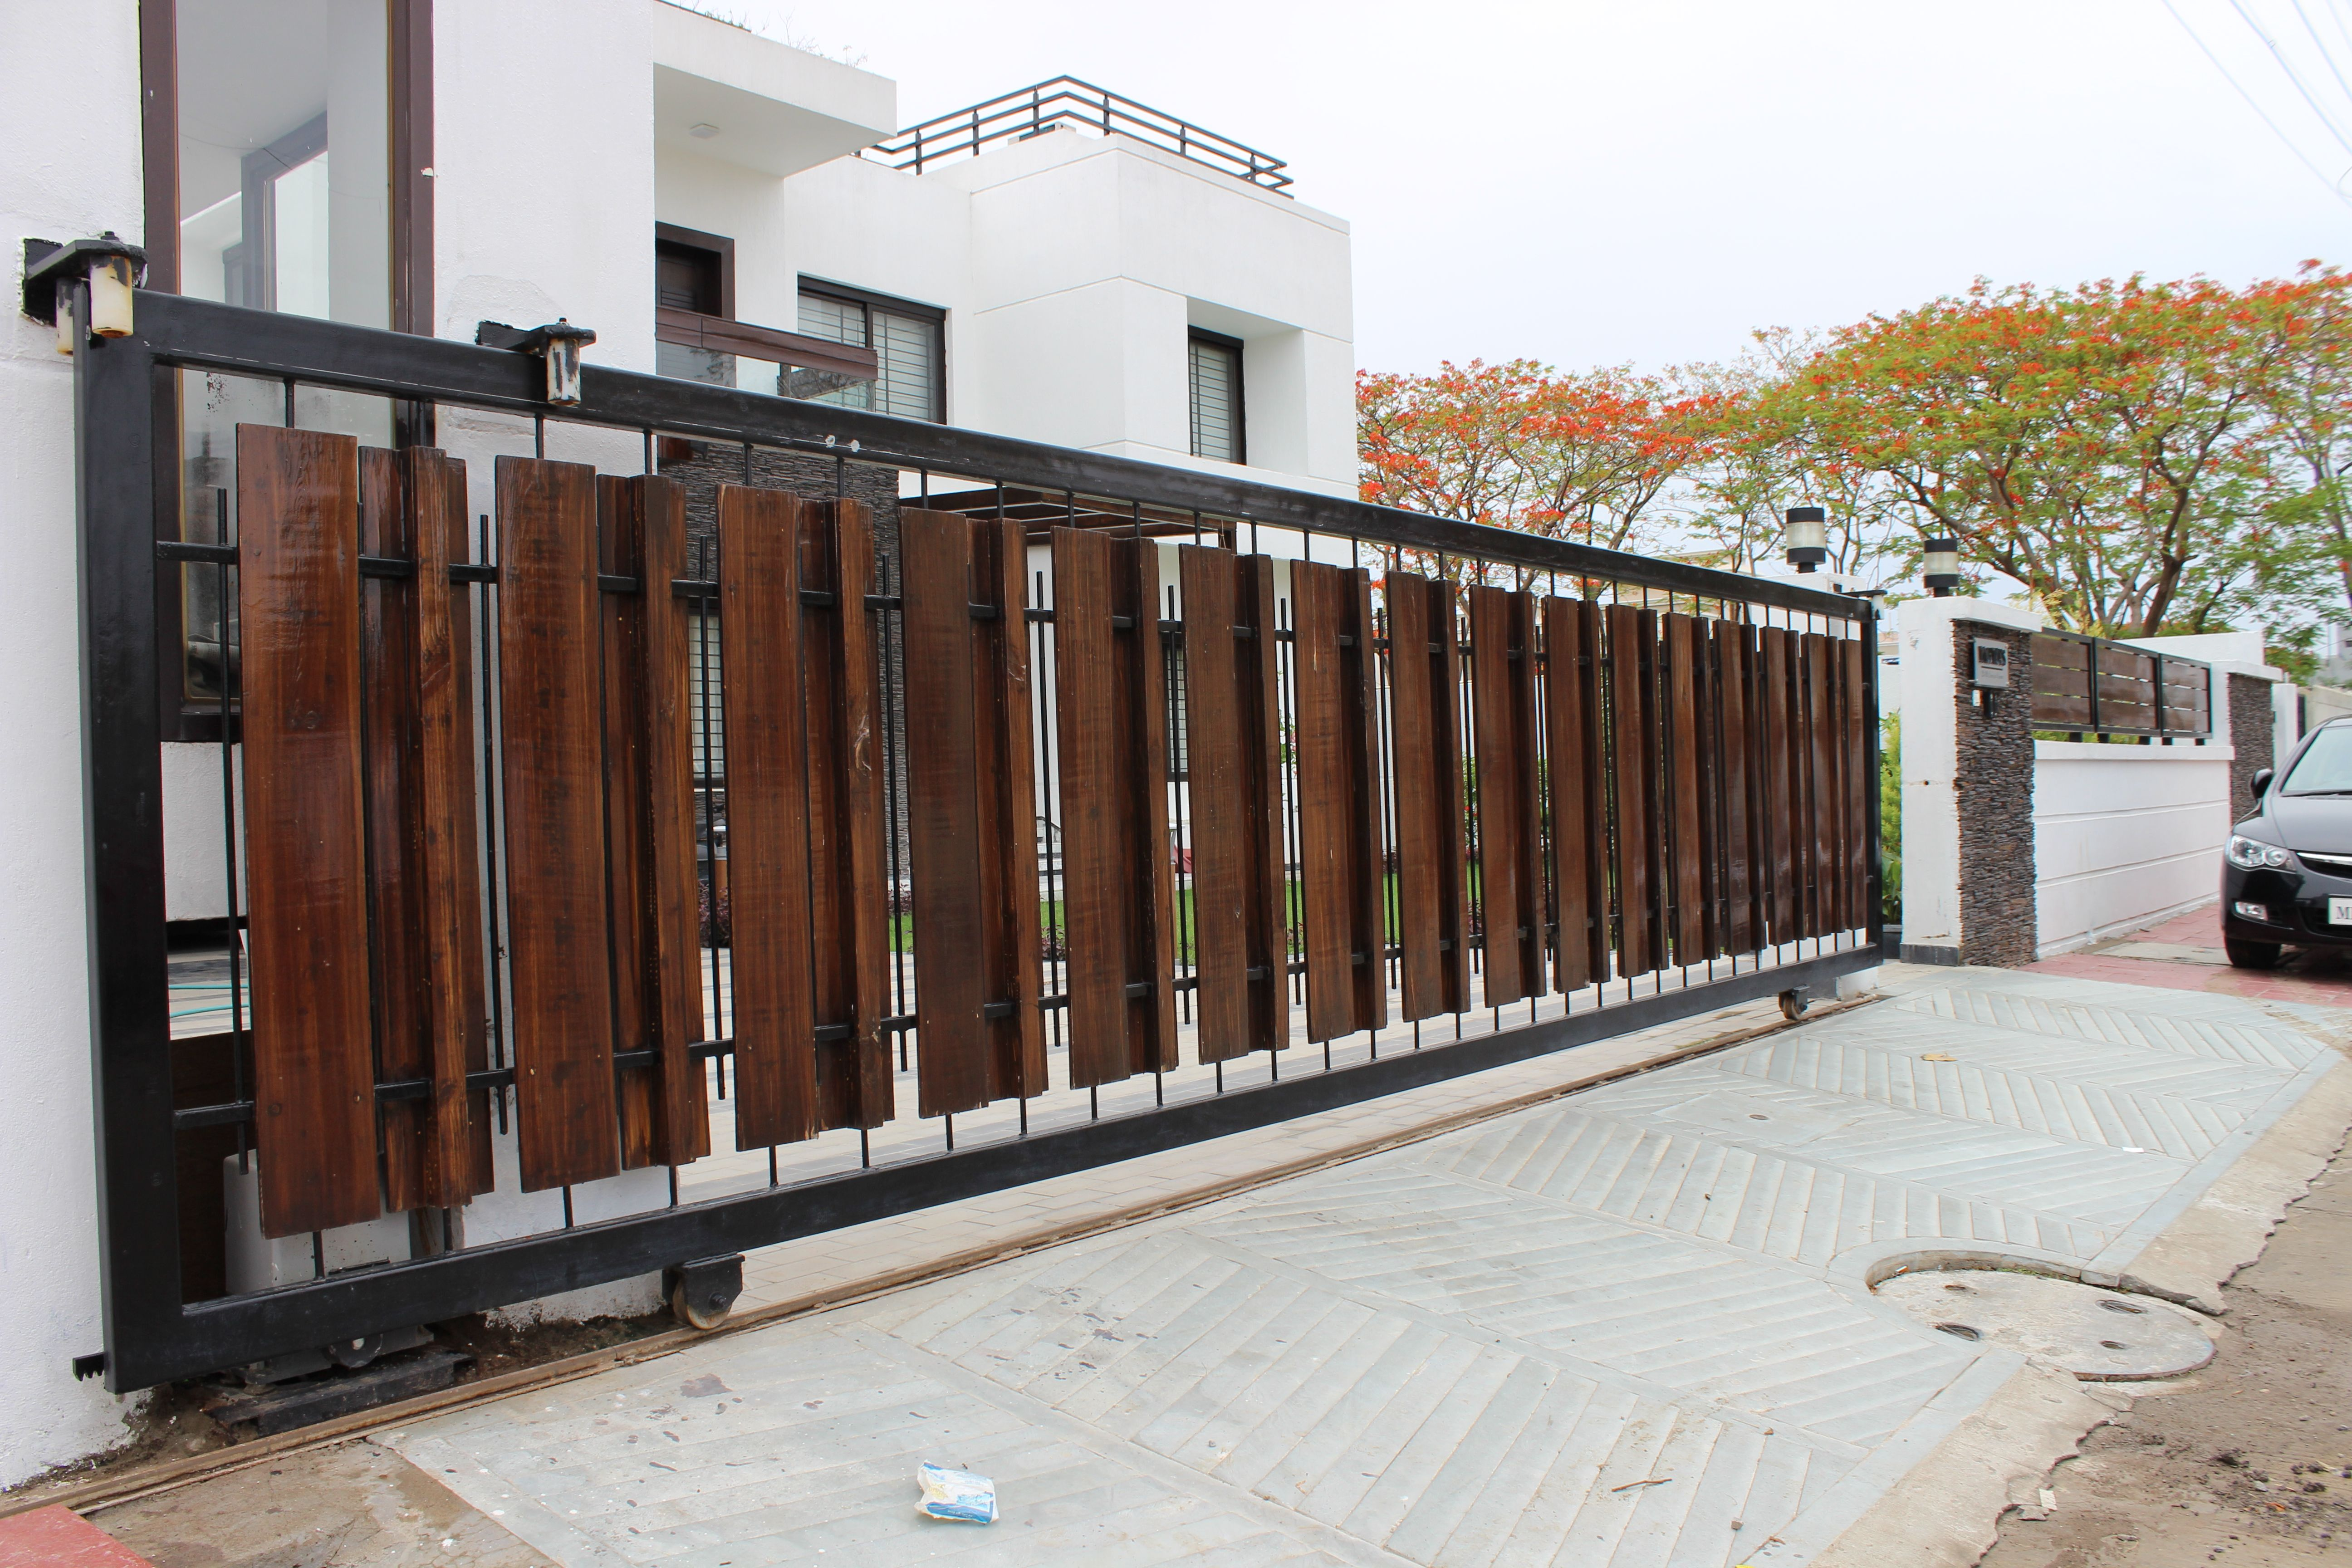 Gate Designs Sliding Gates Designs - Stainless steel sliding gate designs navodaya steels